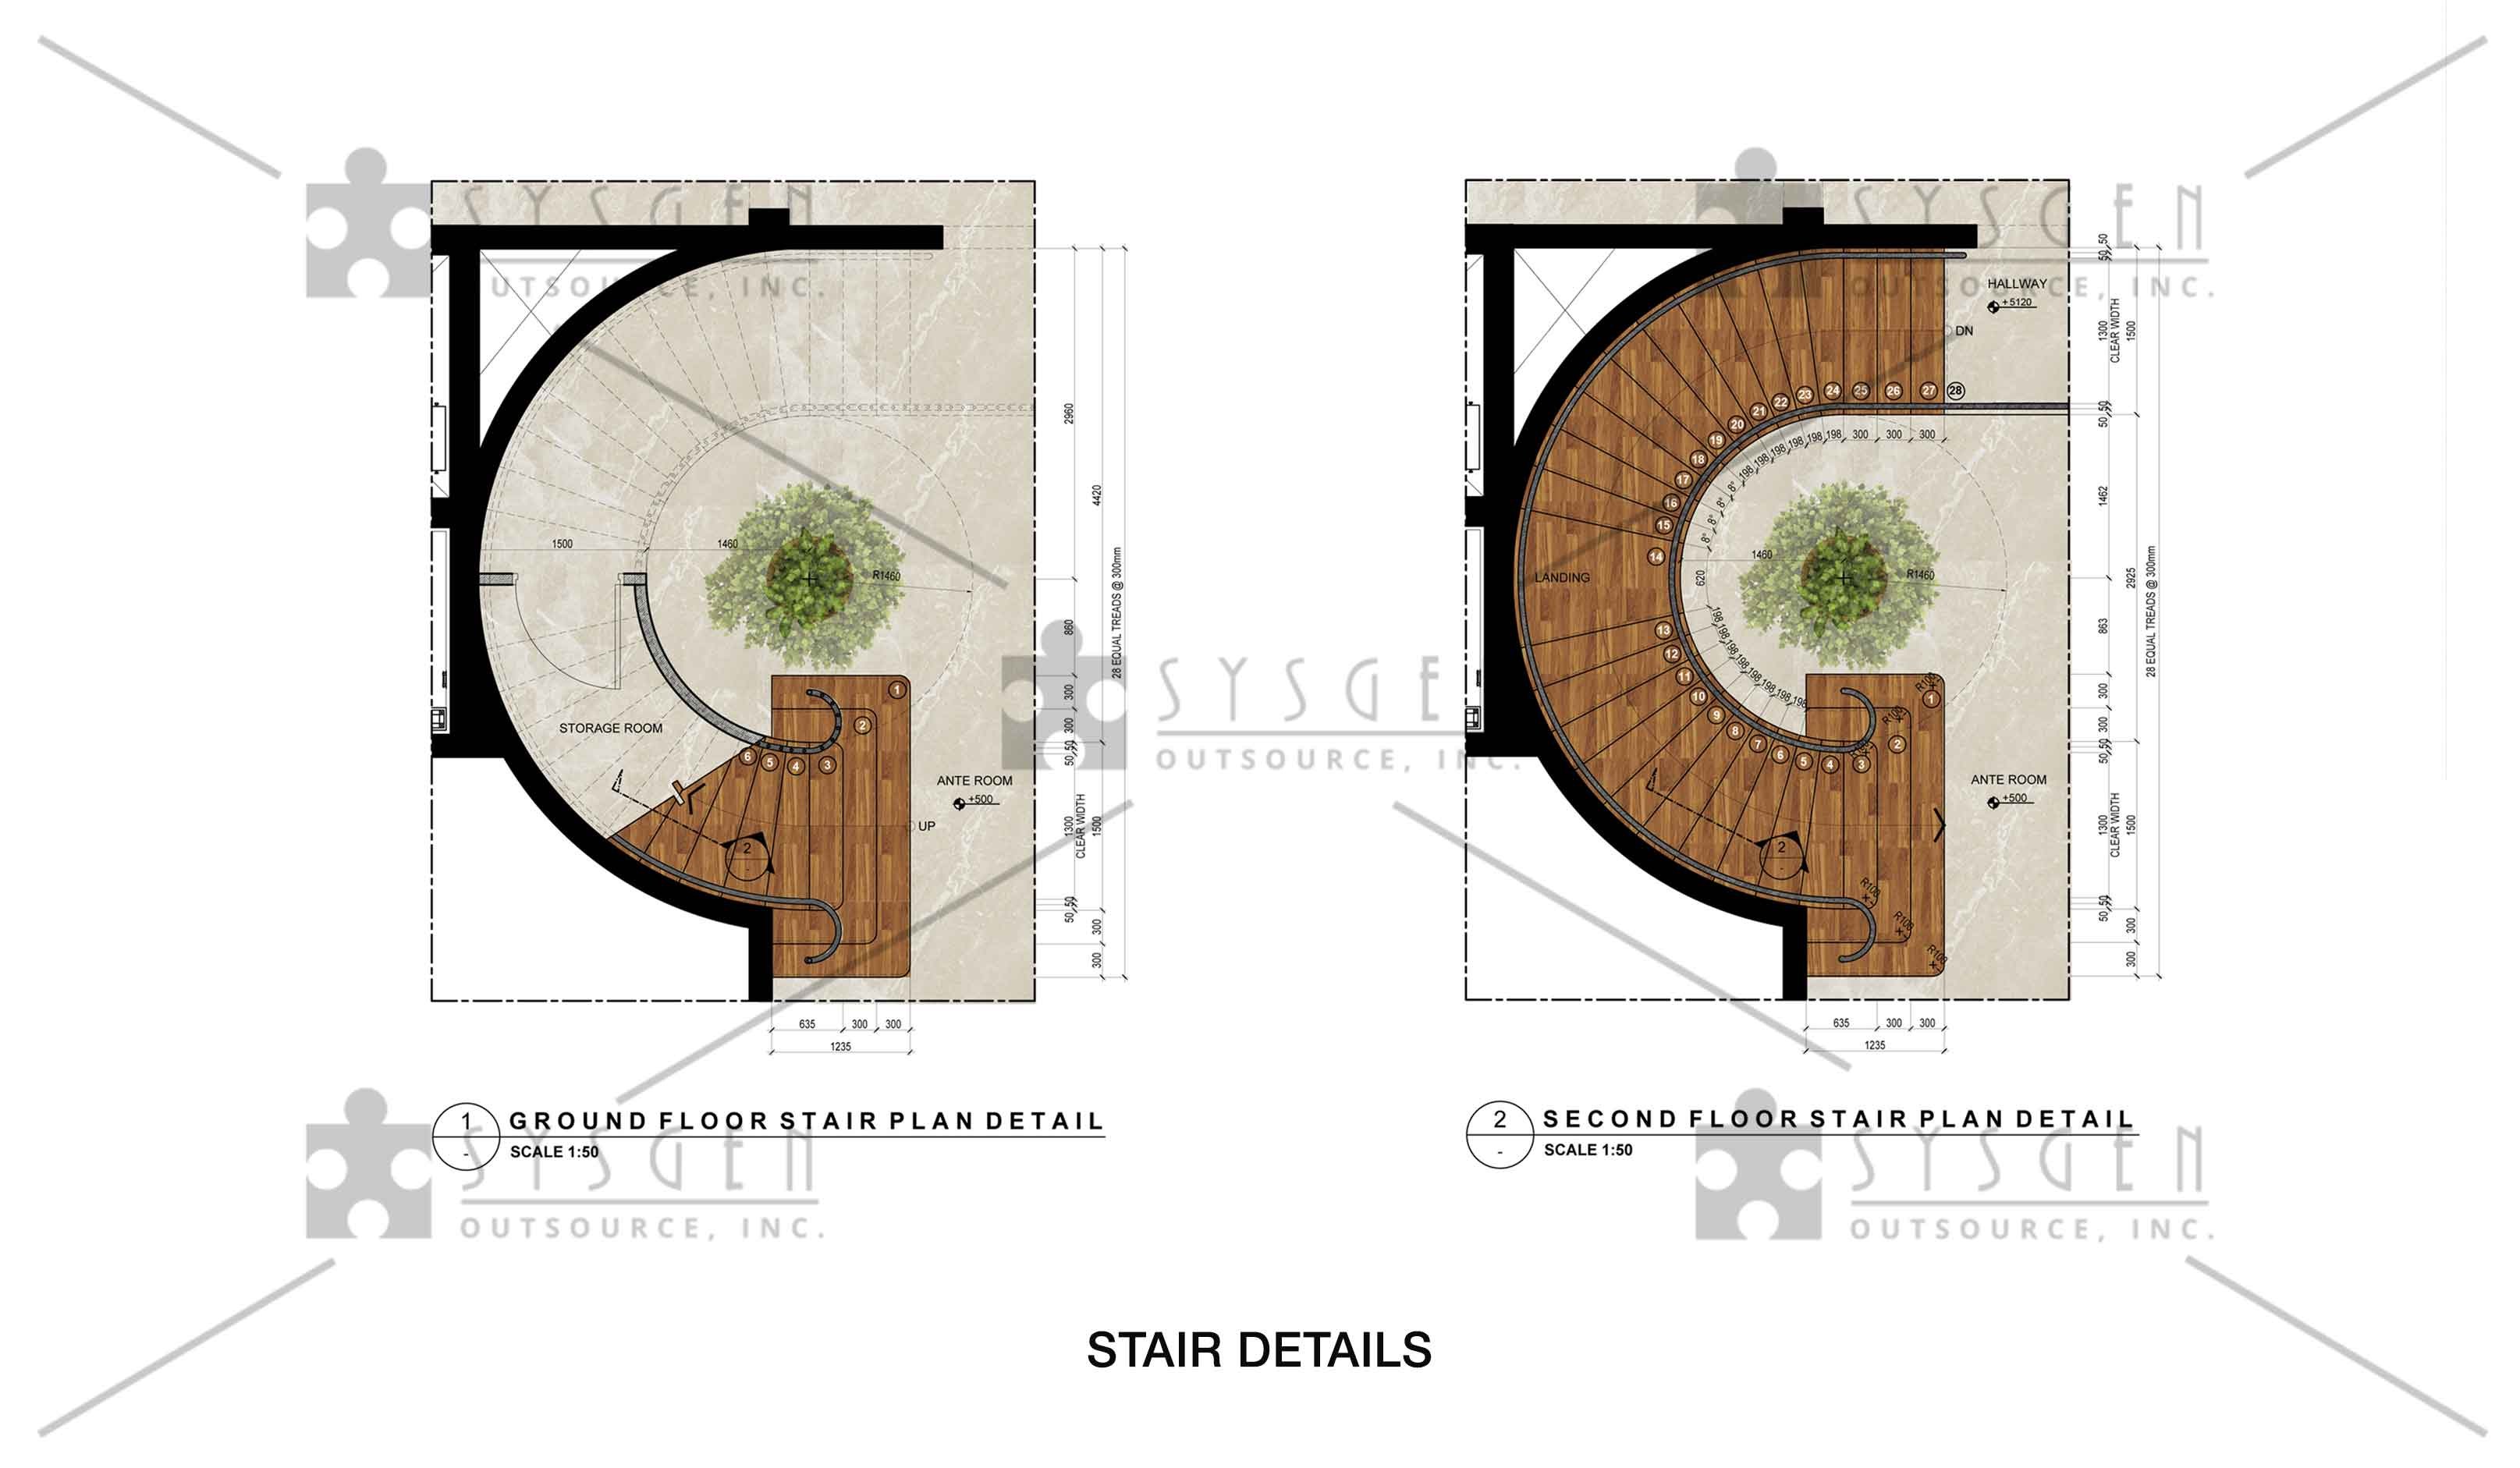 sysgen-outsource-cad-outsourcing-services-sketch-up-resi_villa-katnis11